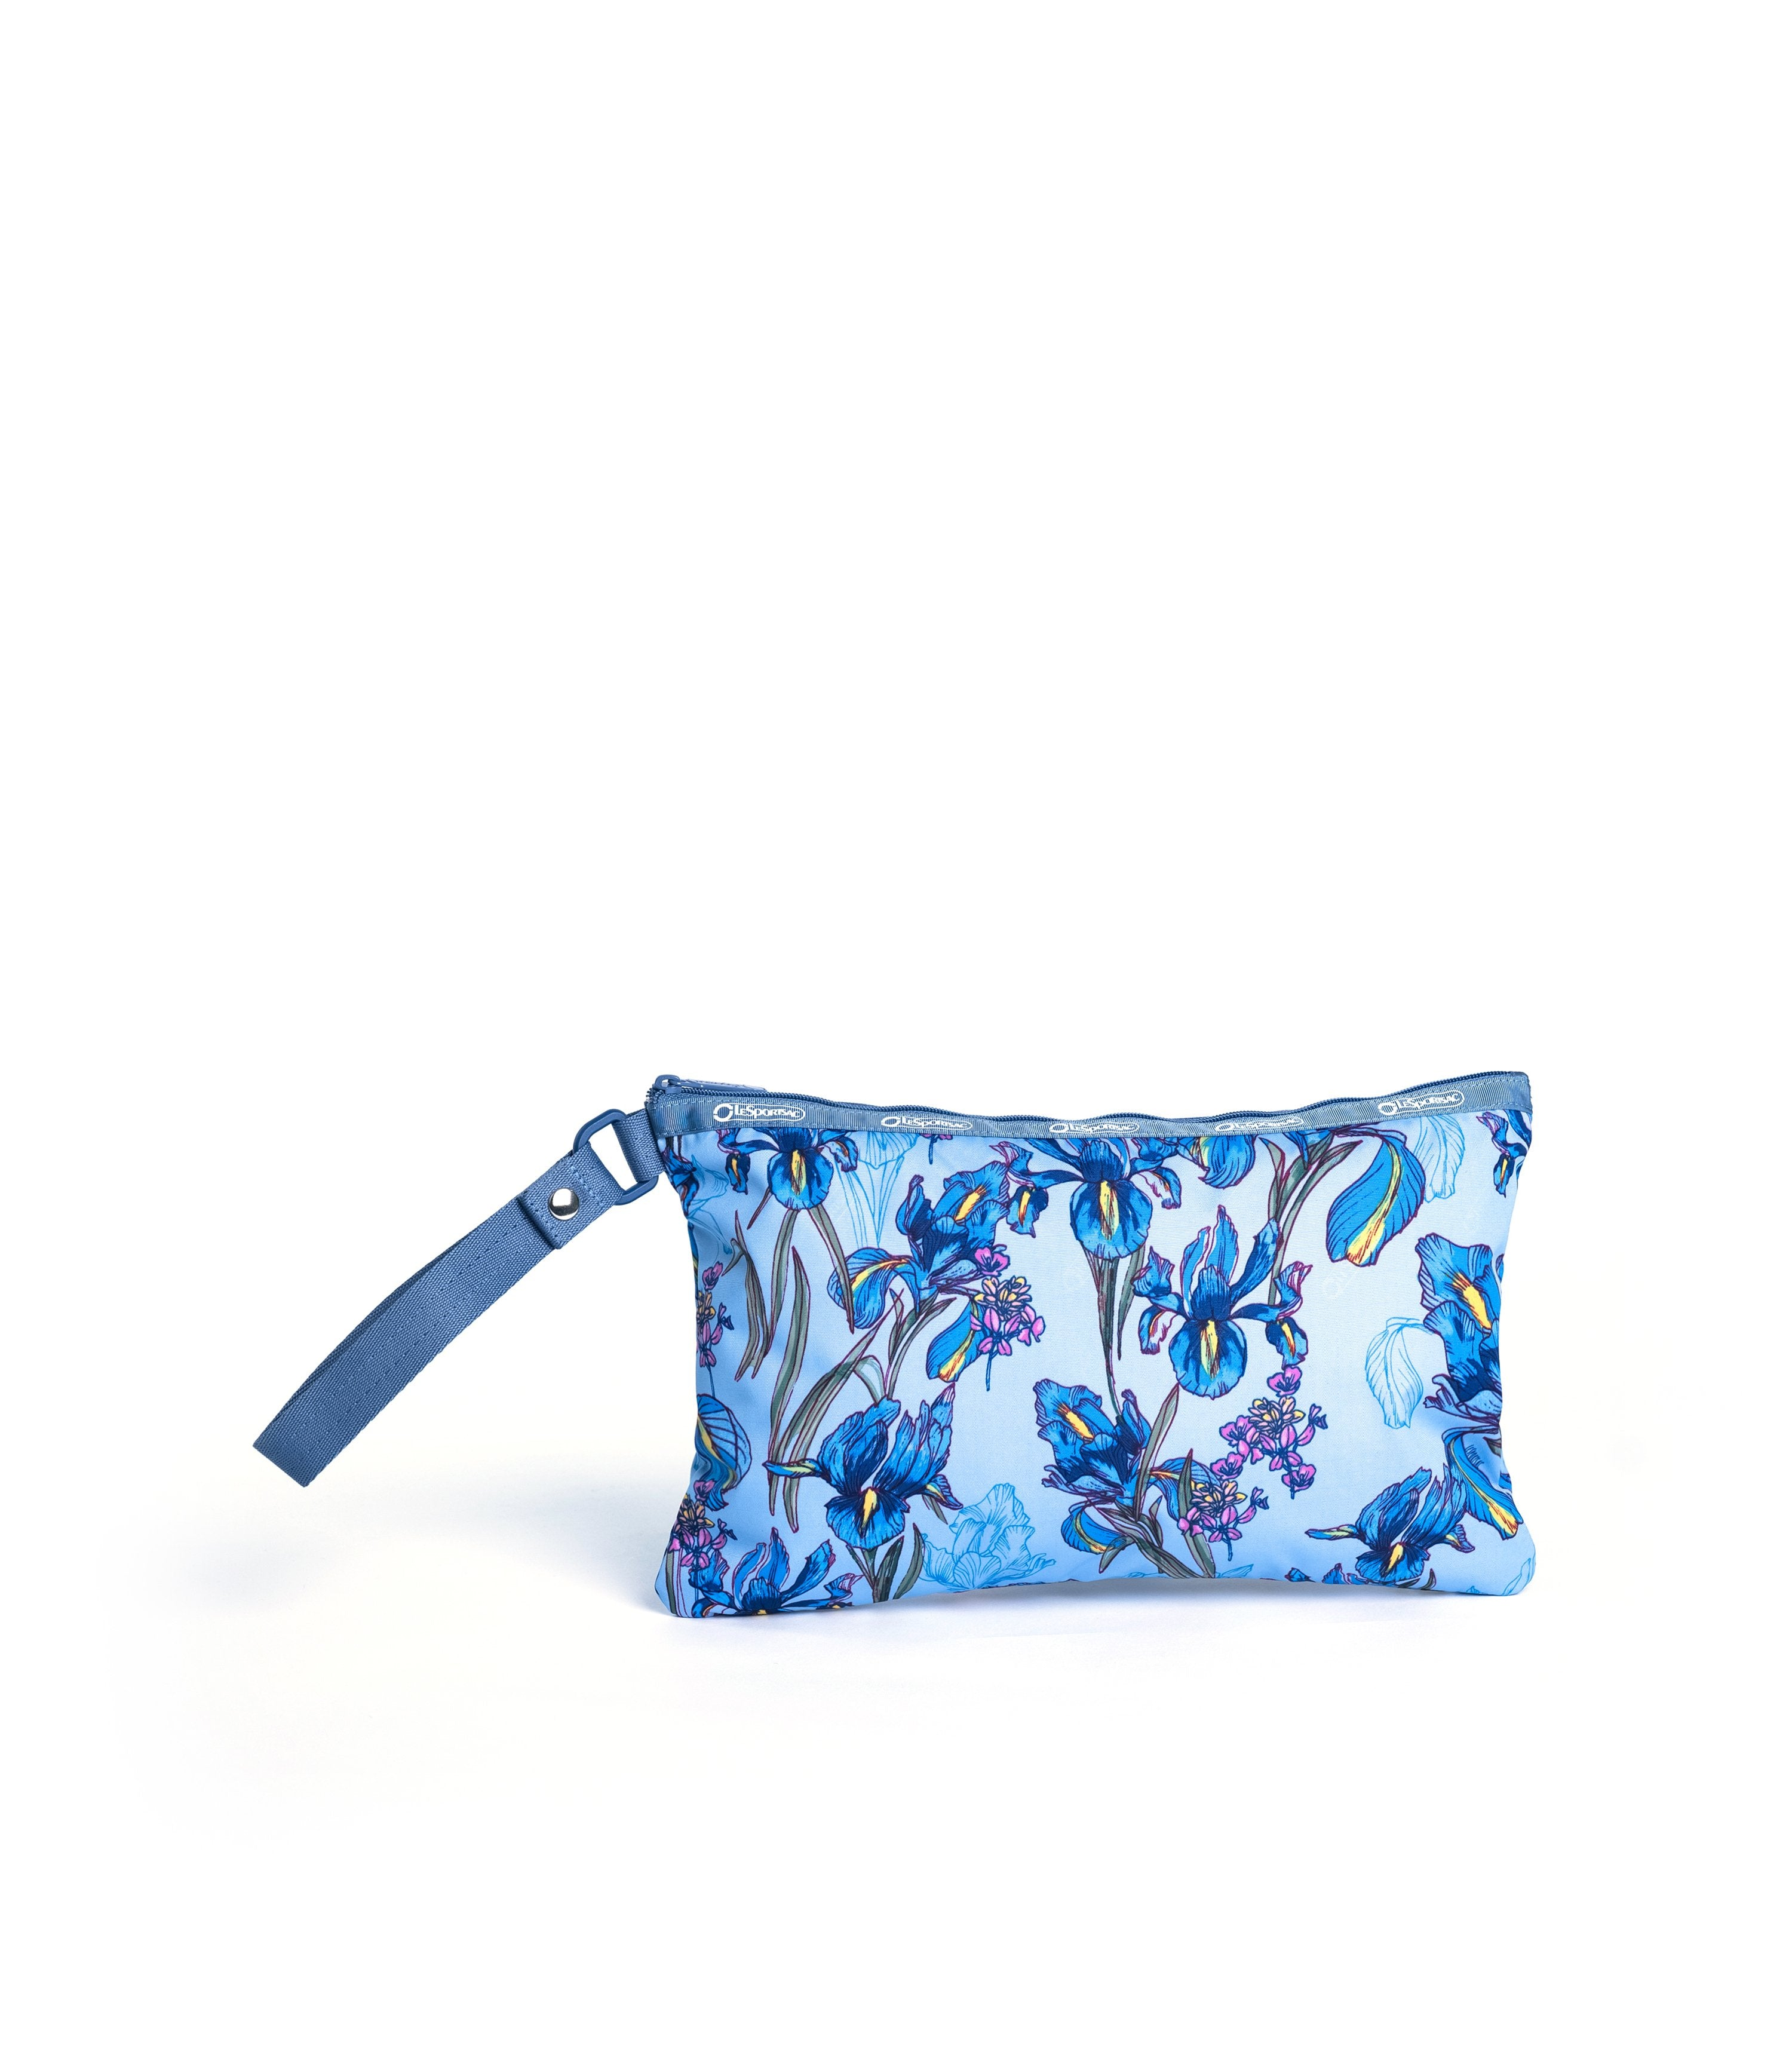 LeSportsac - Recycled Wristlet Pouch - Accessories - Eco Iris Garden print